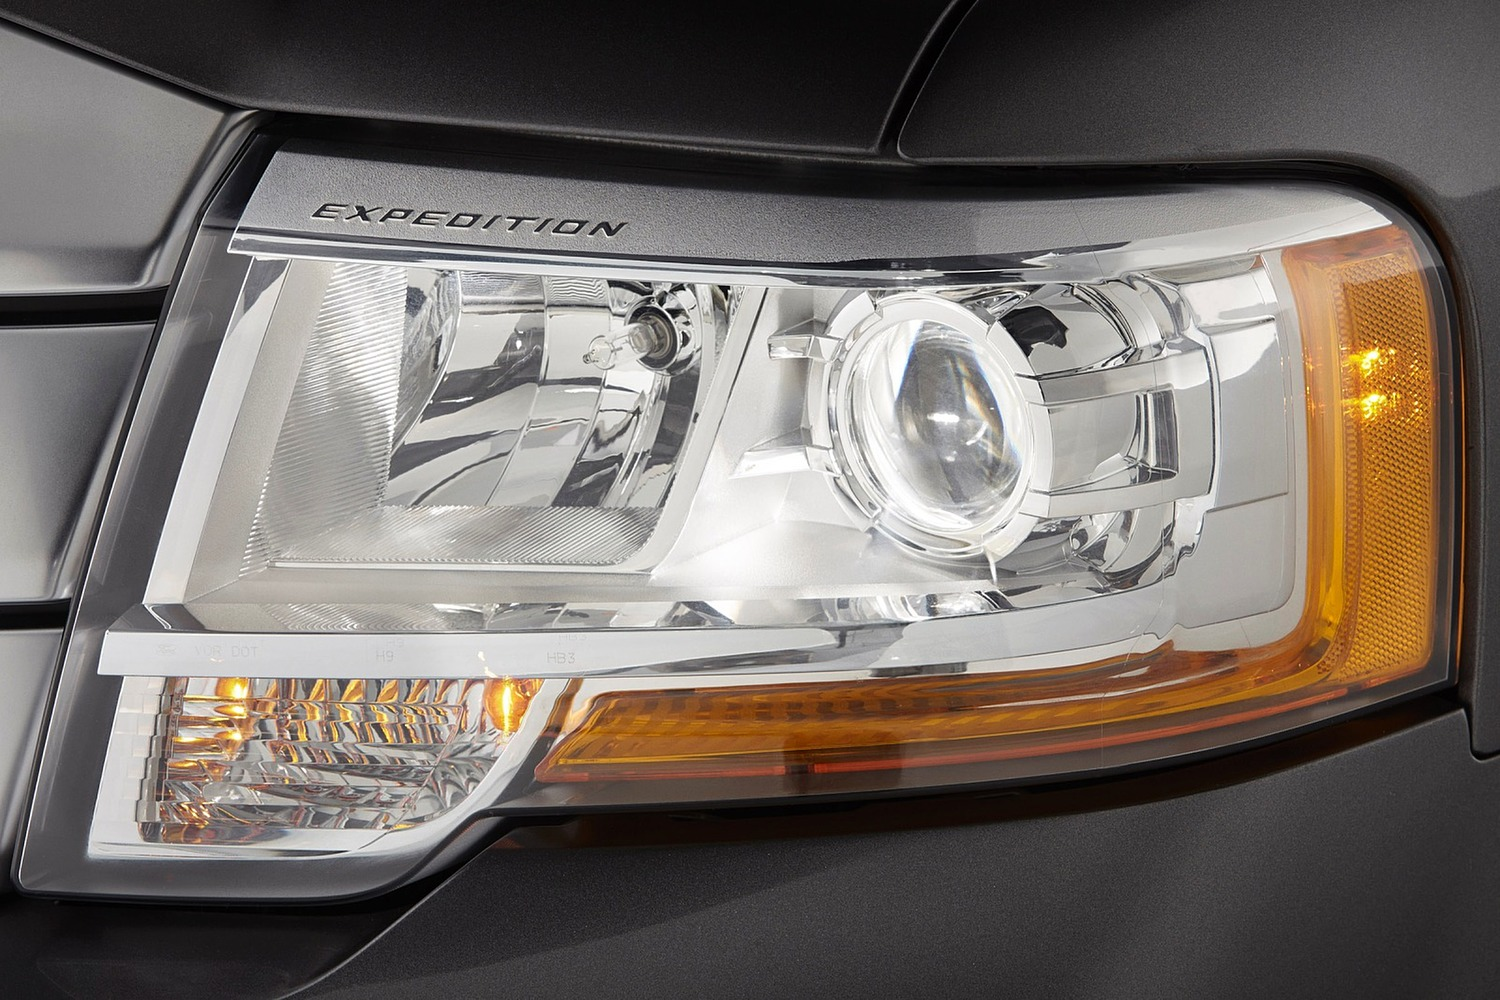 Ford Expedition Platinum 4dr SUV Headlamp Detail (2015 model year shown)